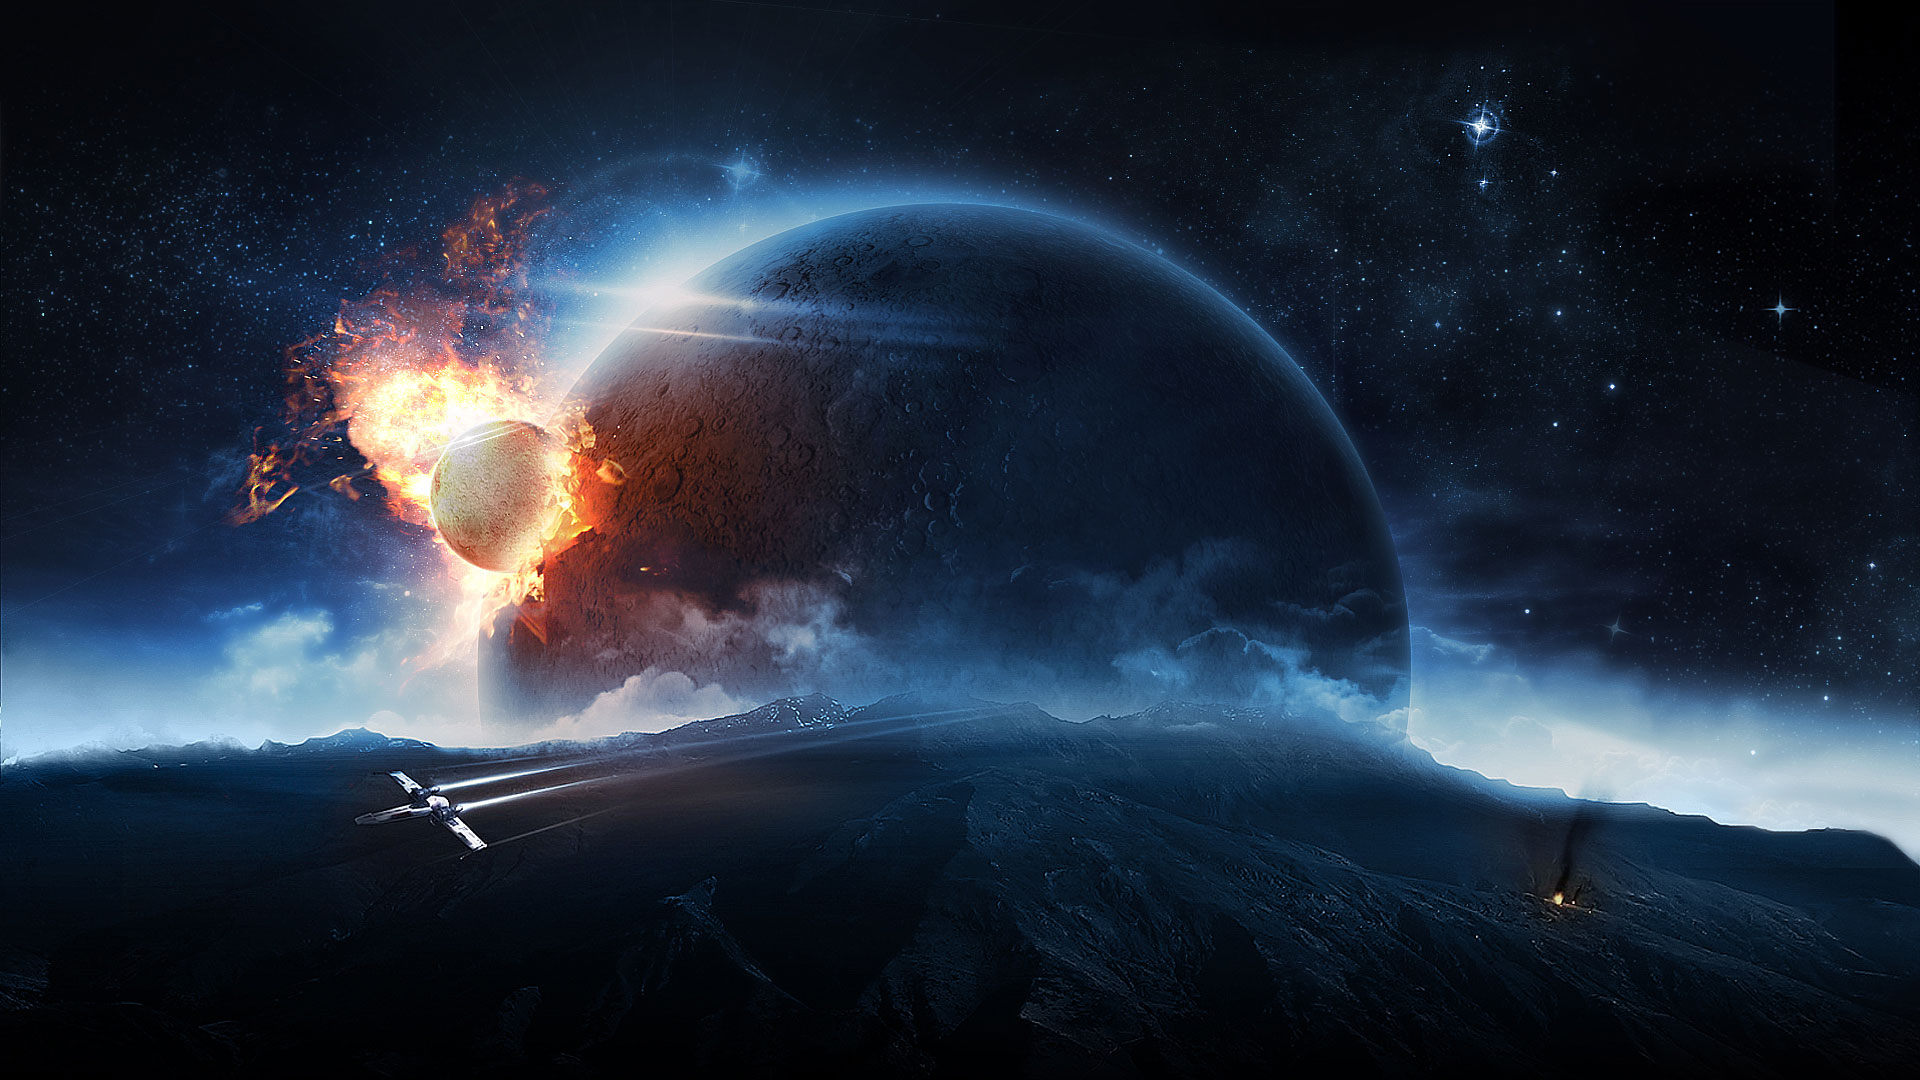 definition or widescreen resolution High Resolution Space Wallpapers 1920x1080